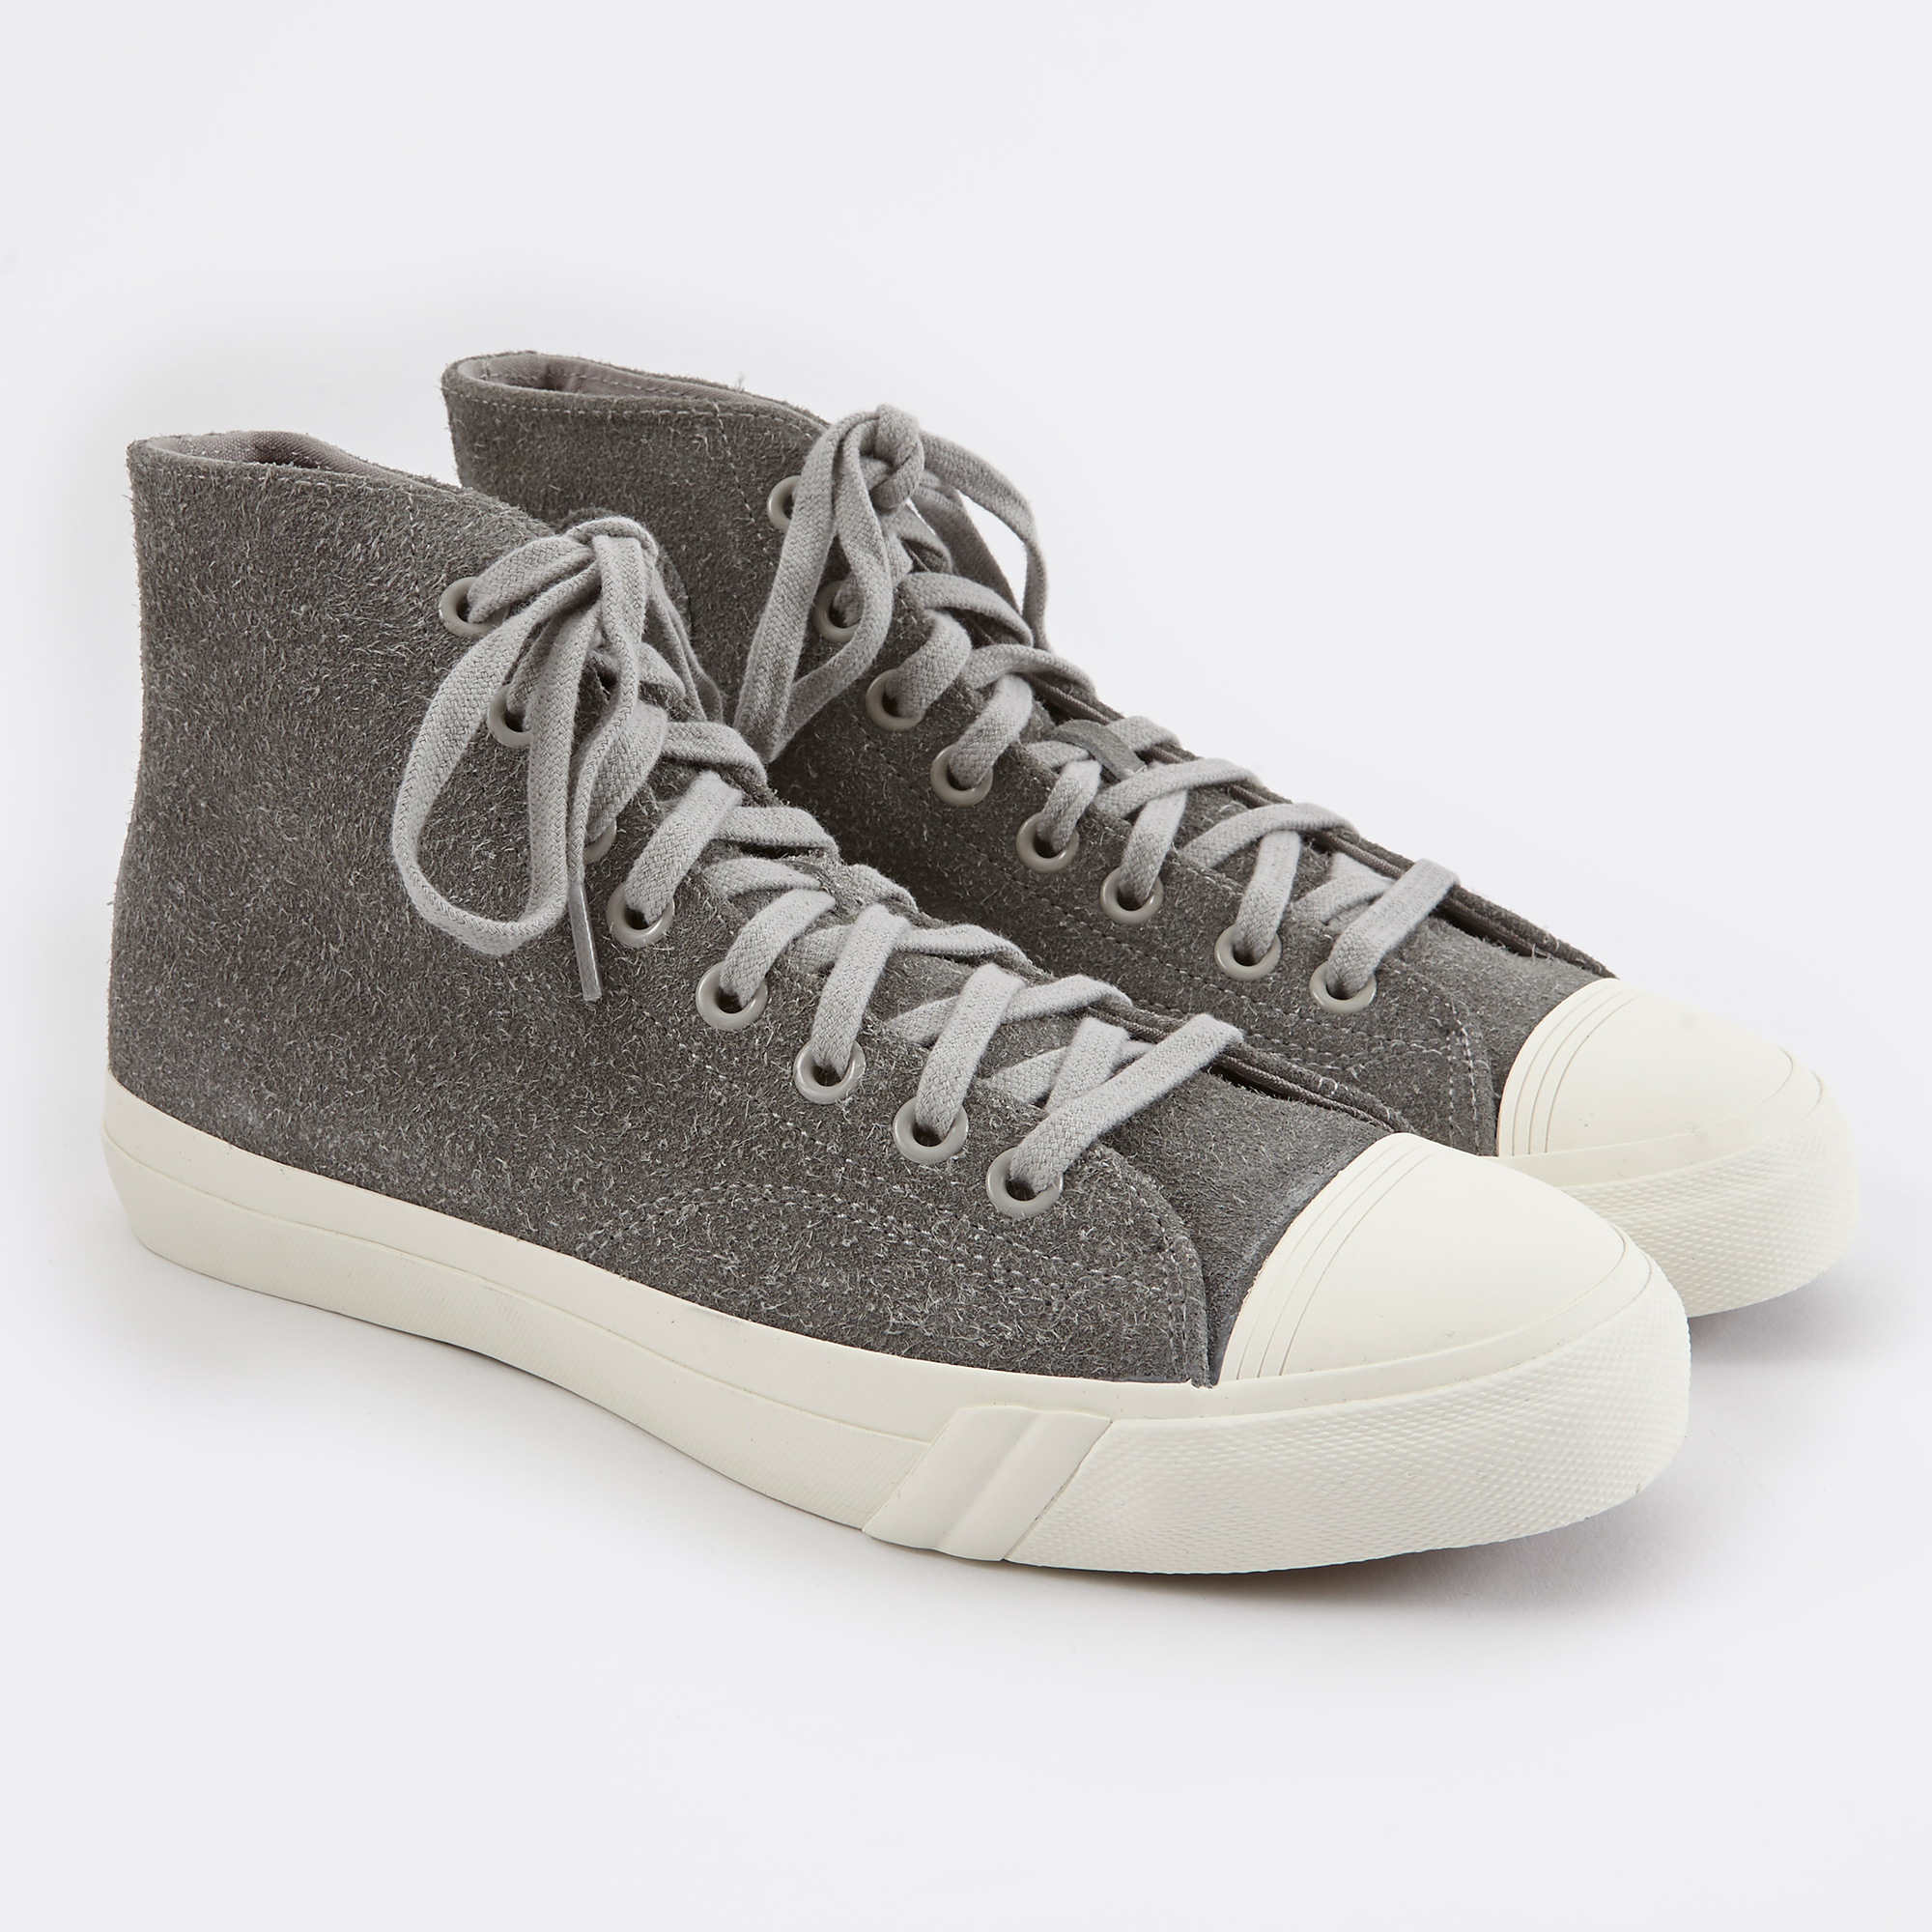 suede pro keds new yorkers